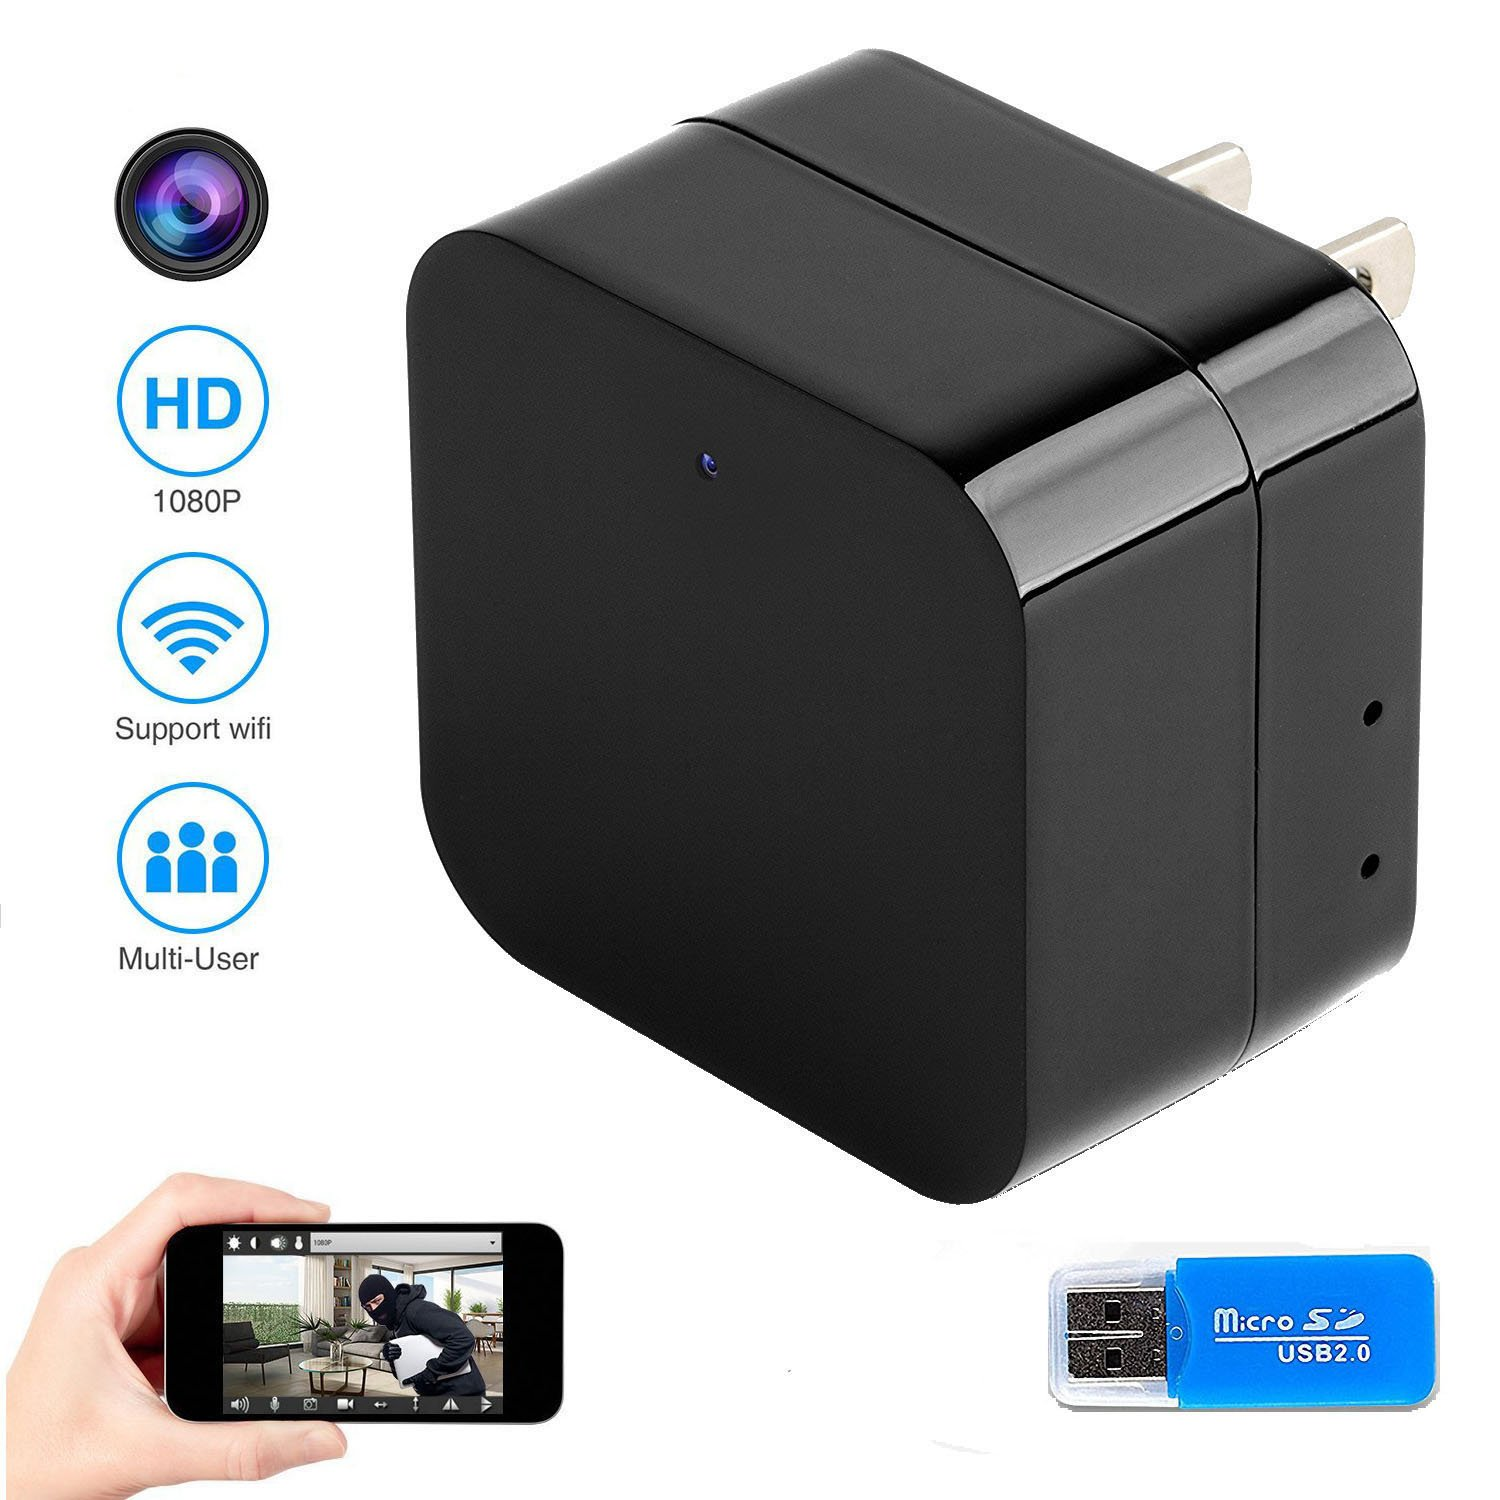 Wall Charger WiFi Hidden Camera, FreSky HD 1080P Wireless USB Charger Adapter Mini Hidden Camera Home Security Pet Nanny Cam with Card Reader